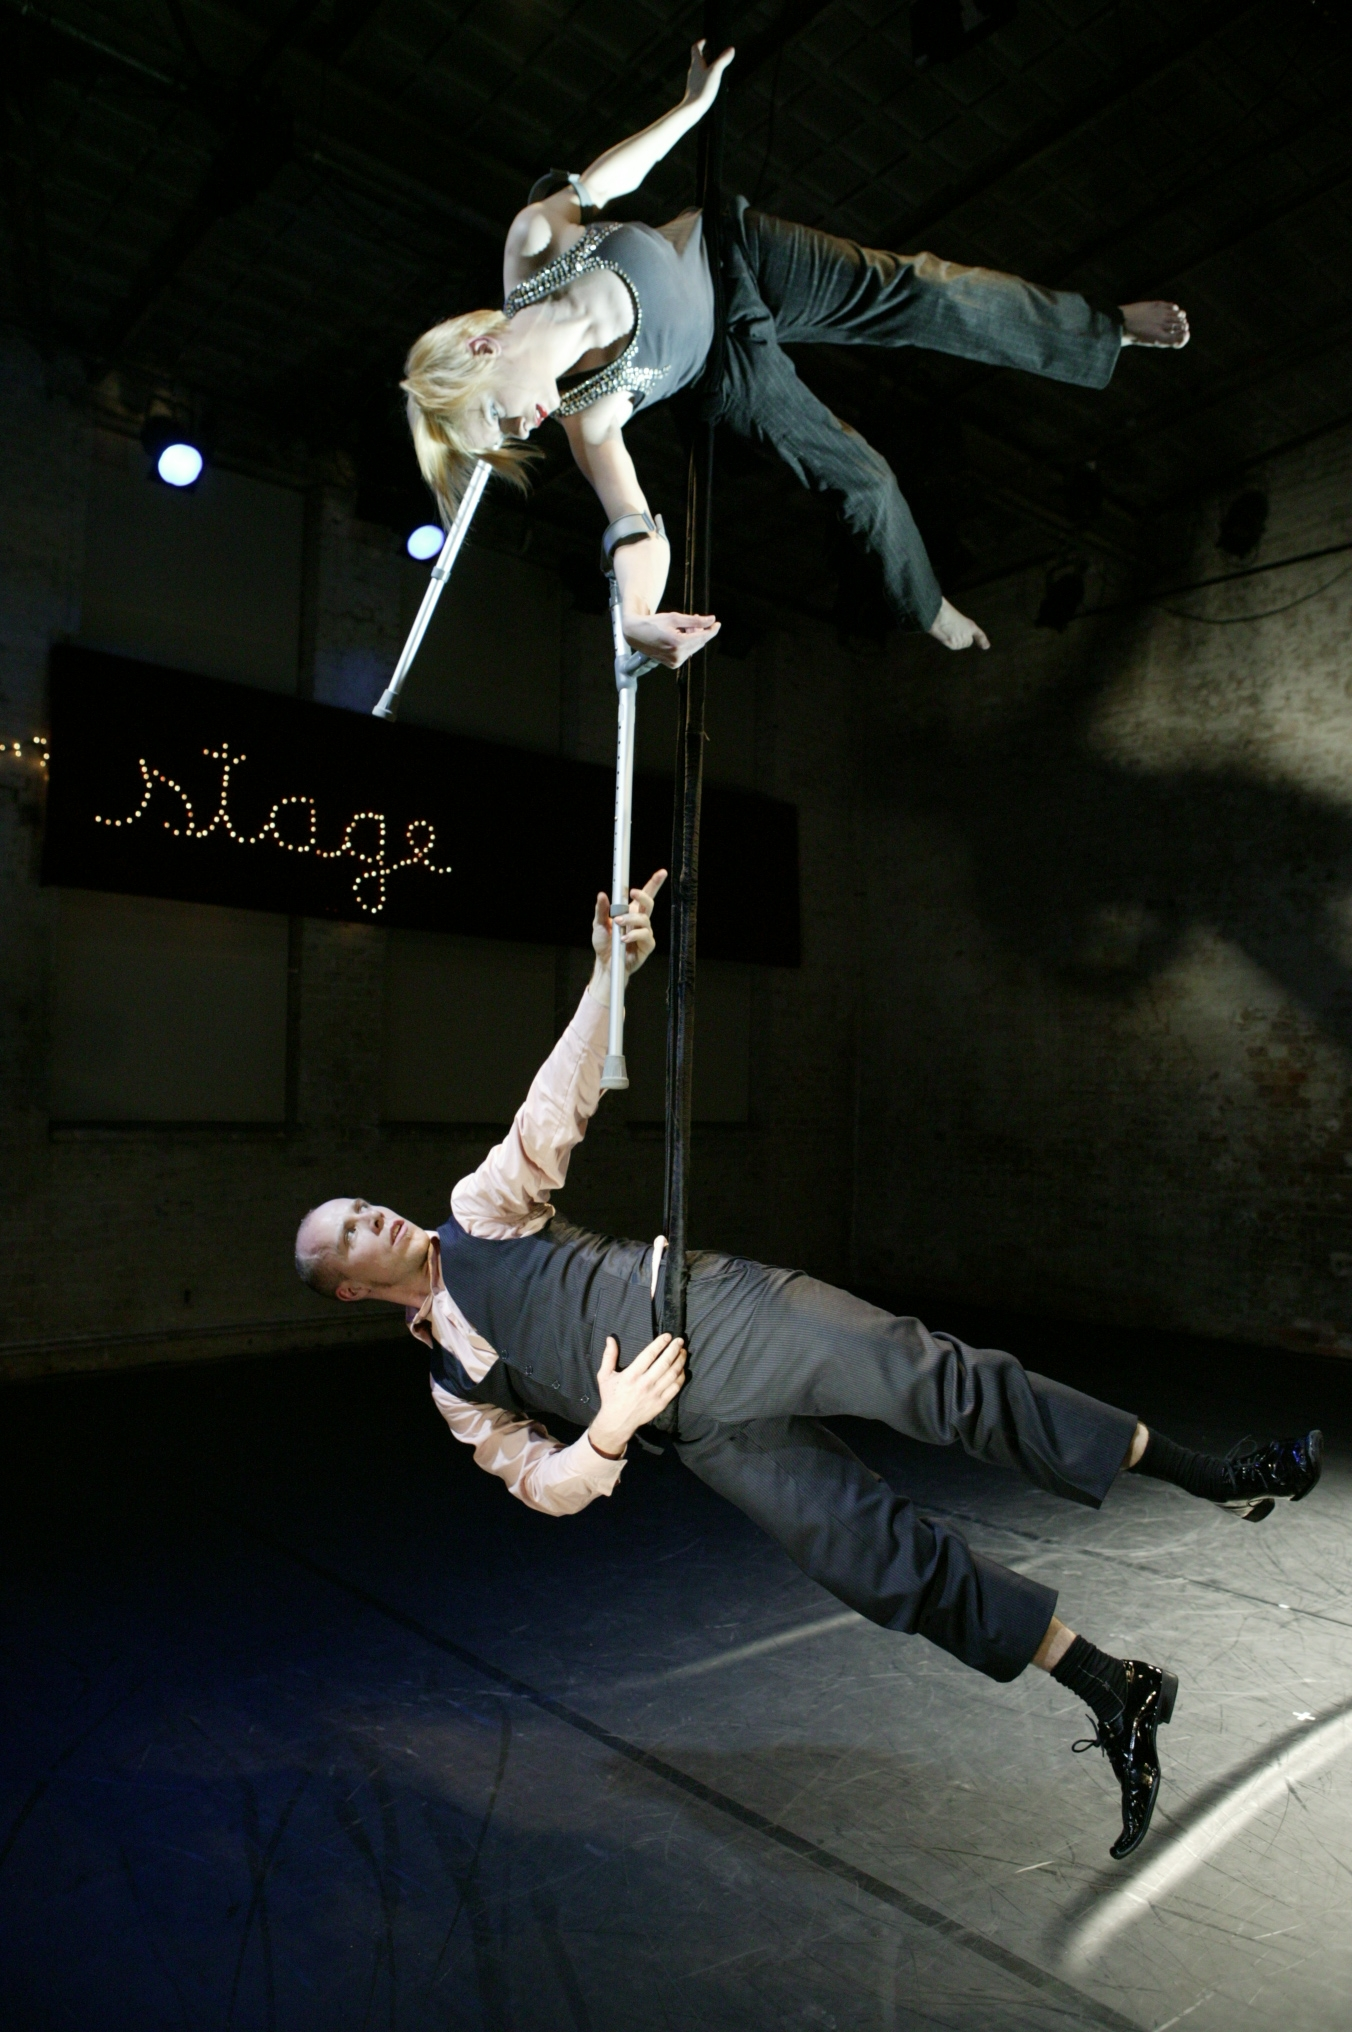 Cunningham hangs above Quarrel, both on aerial ropes. She holds 2 crutches; he grasps the end of one. (photo: Sven Hagolani)